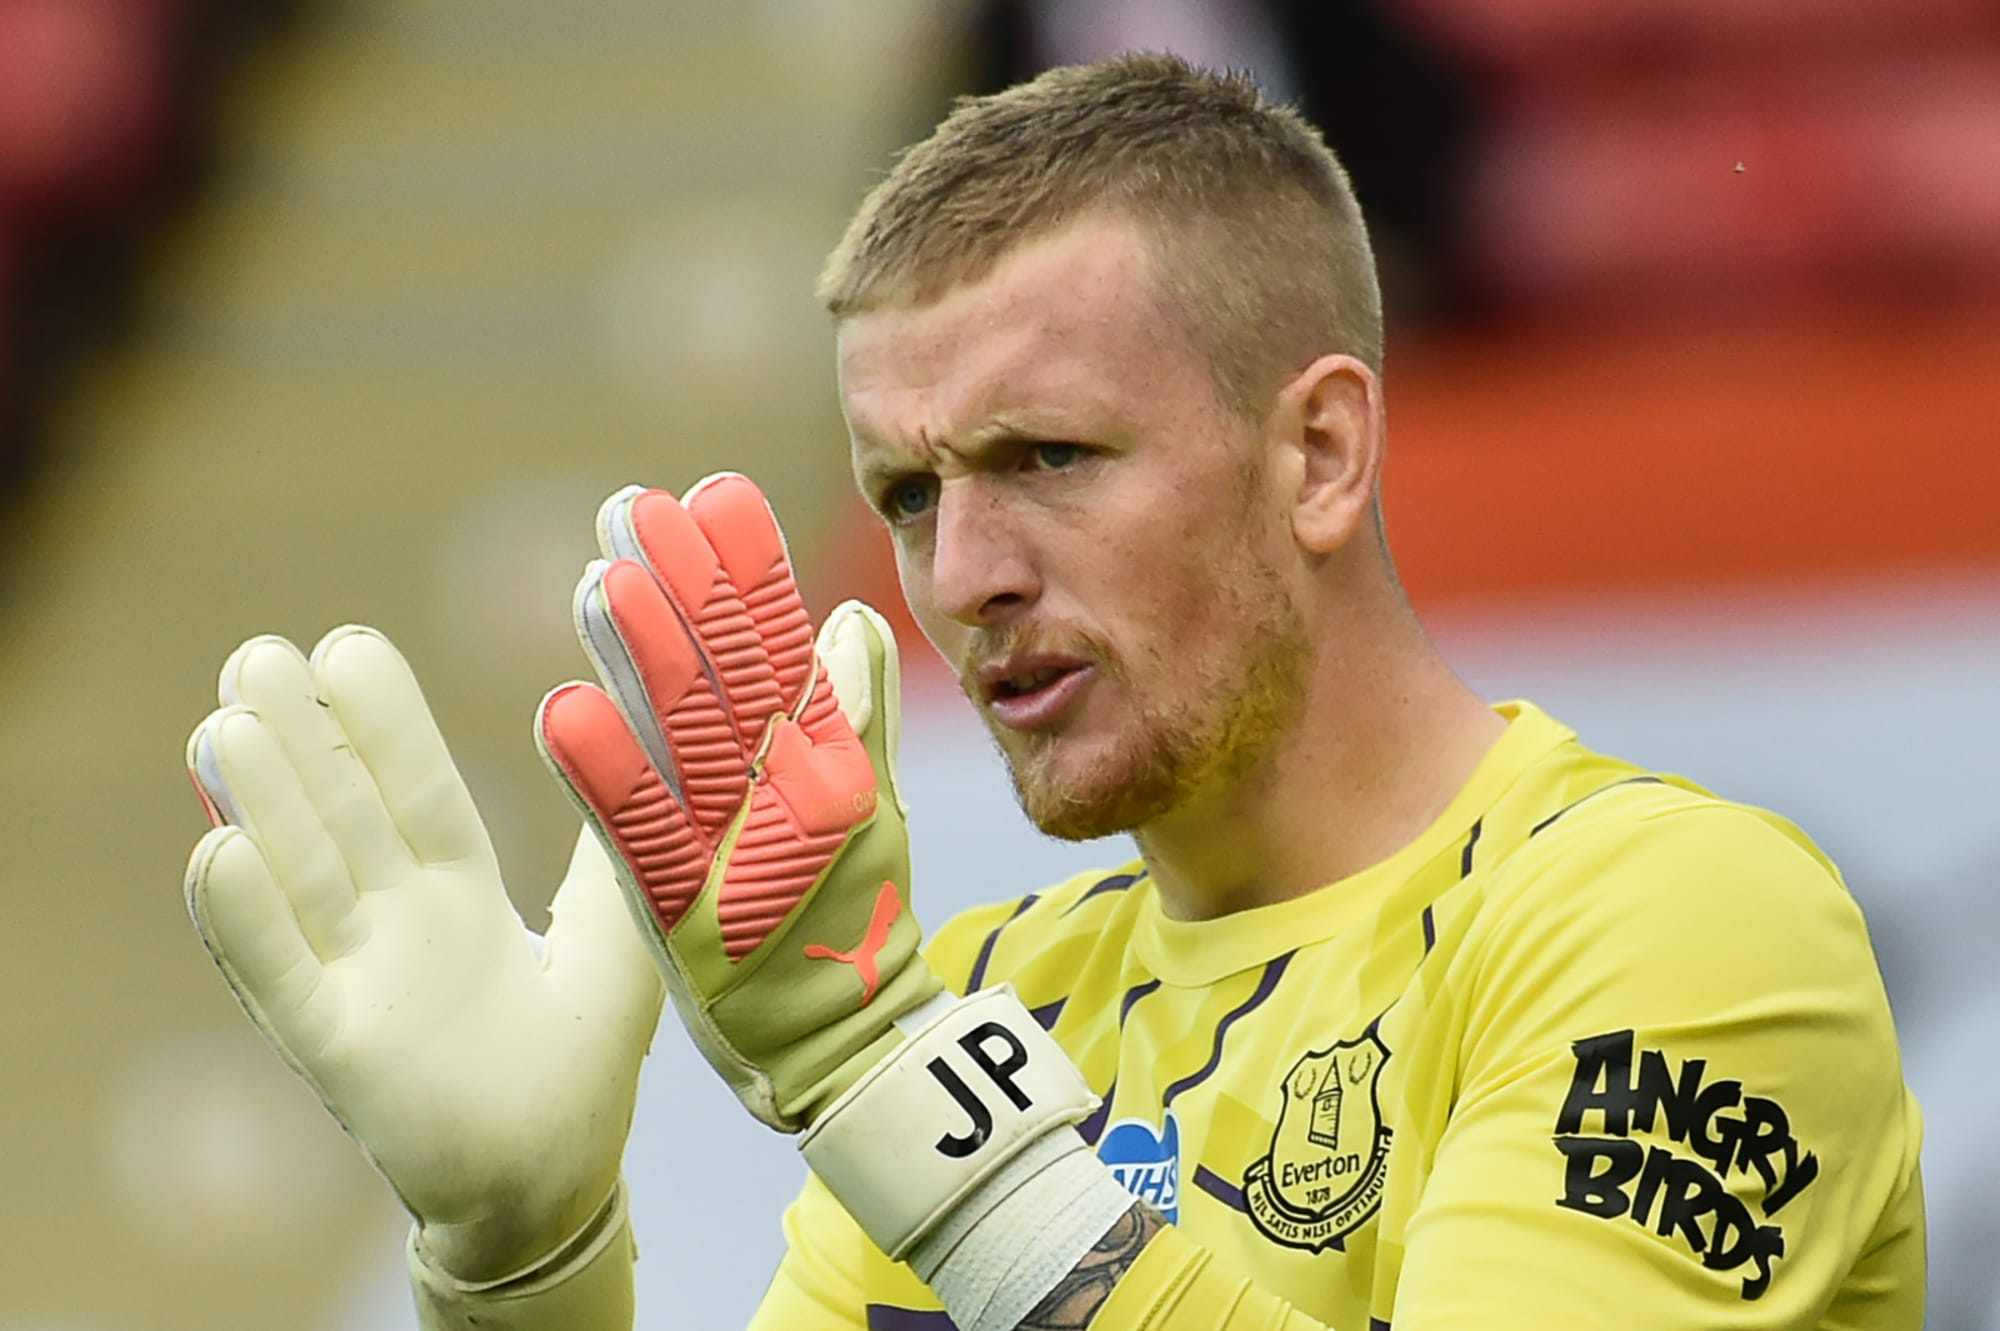 Jordan Pickford's days as Everton No.1 could be numbered